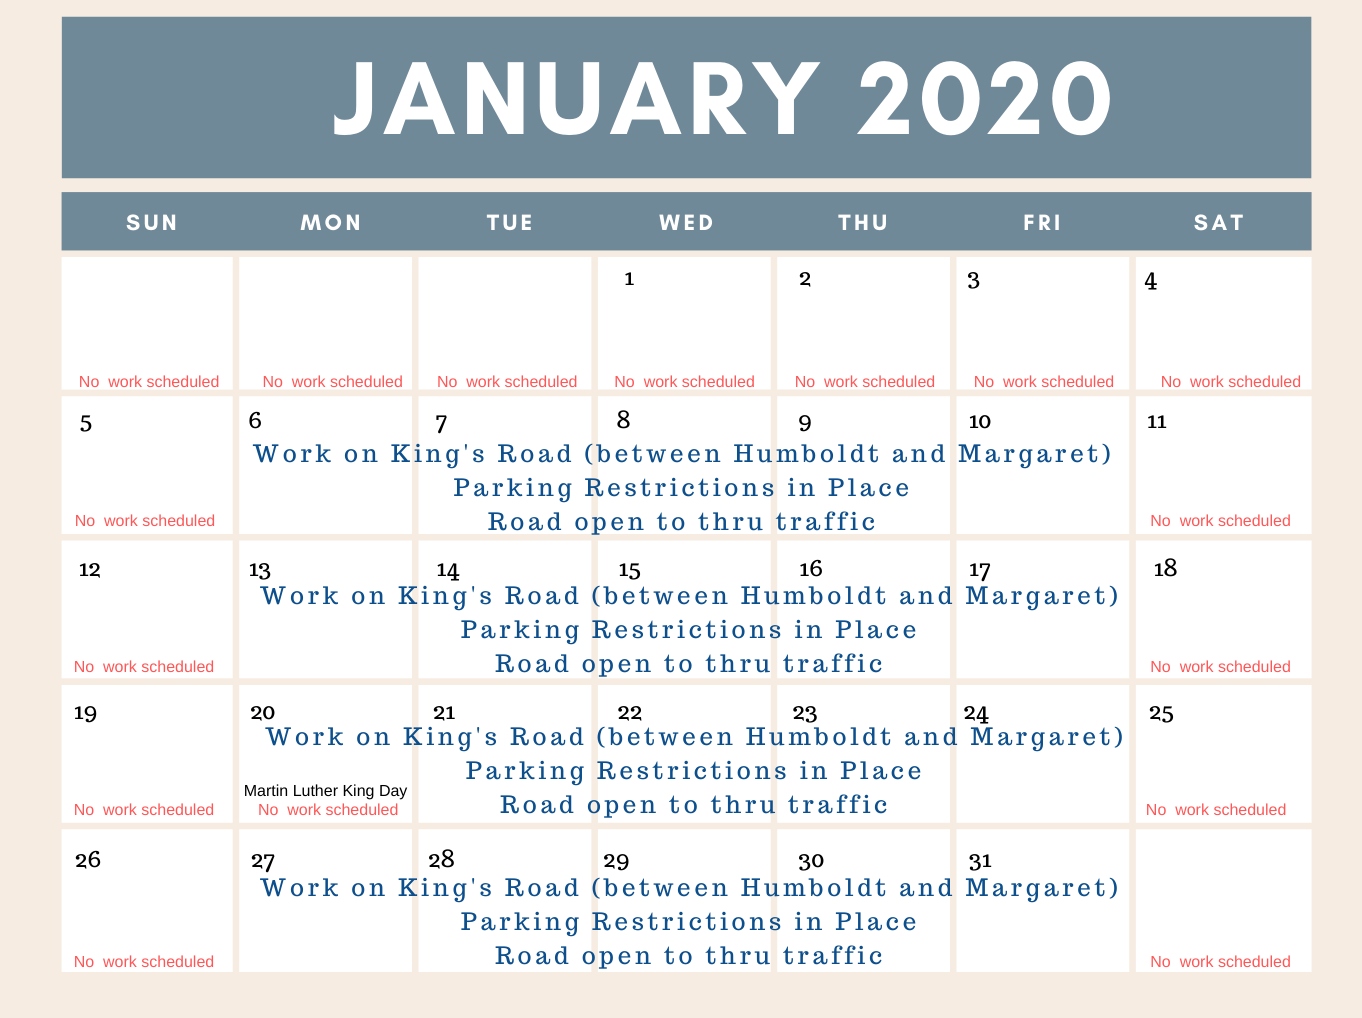 Schedule of work on Kings Road for January